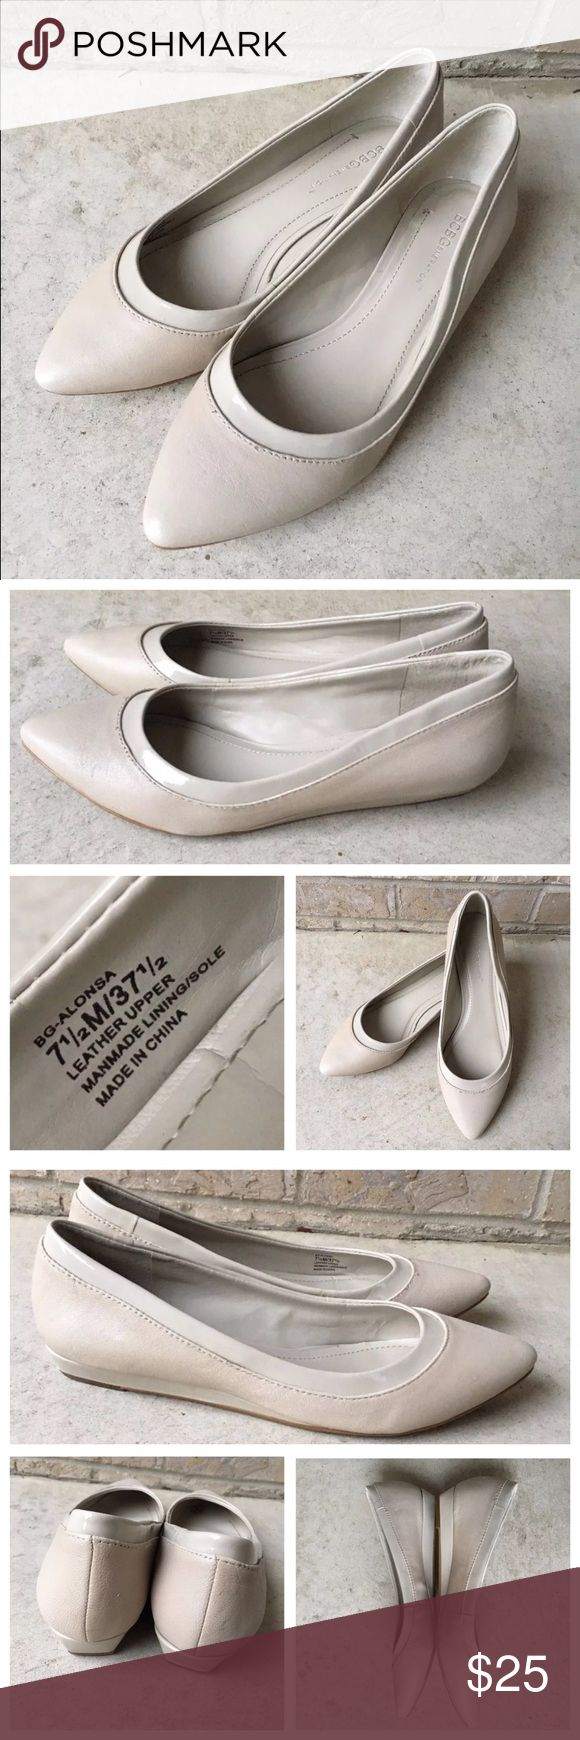 BCBG Generation Alonsa Beige Pointed Toe Shoes 7.5 BCBG Generation Alonsa Beige Pointed Toe Shoes  Women's Size 7.5 M Gently used, worn only a few times.  Some minor signs of normal wear - see pictures for details. BCBGeneration Shoes Flats & Loafers